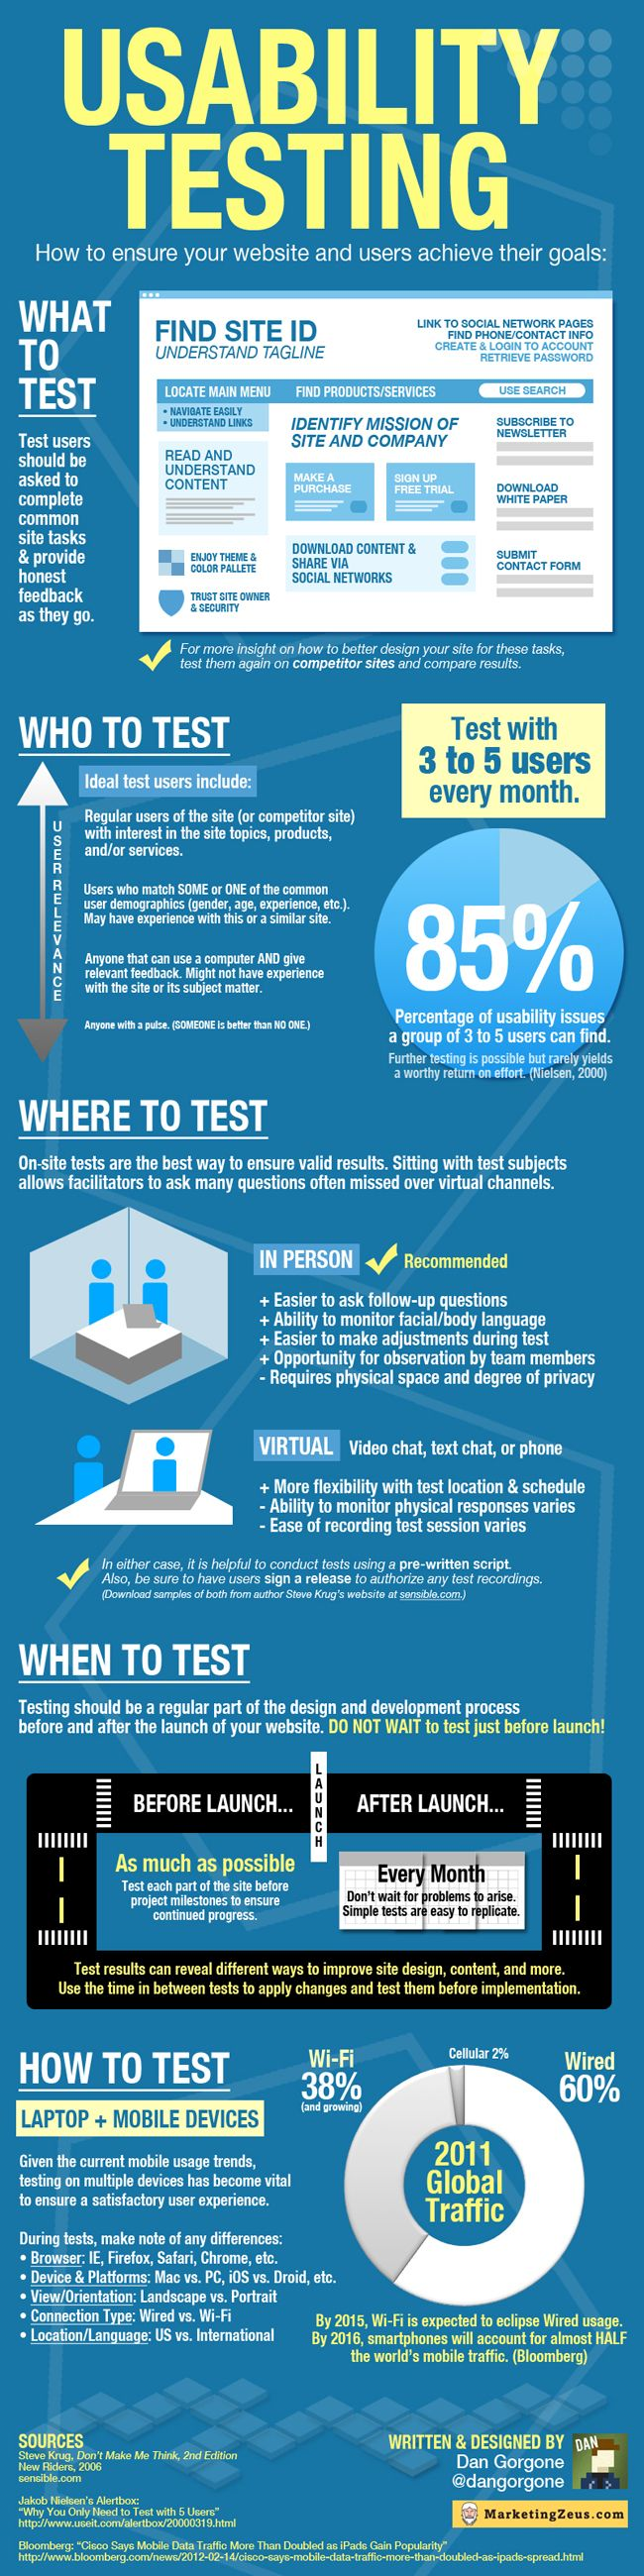 Usability Testing How to ensure your website and users achieve their goals